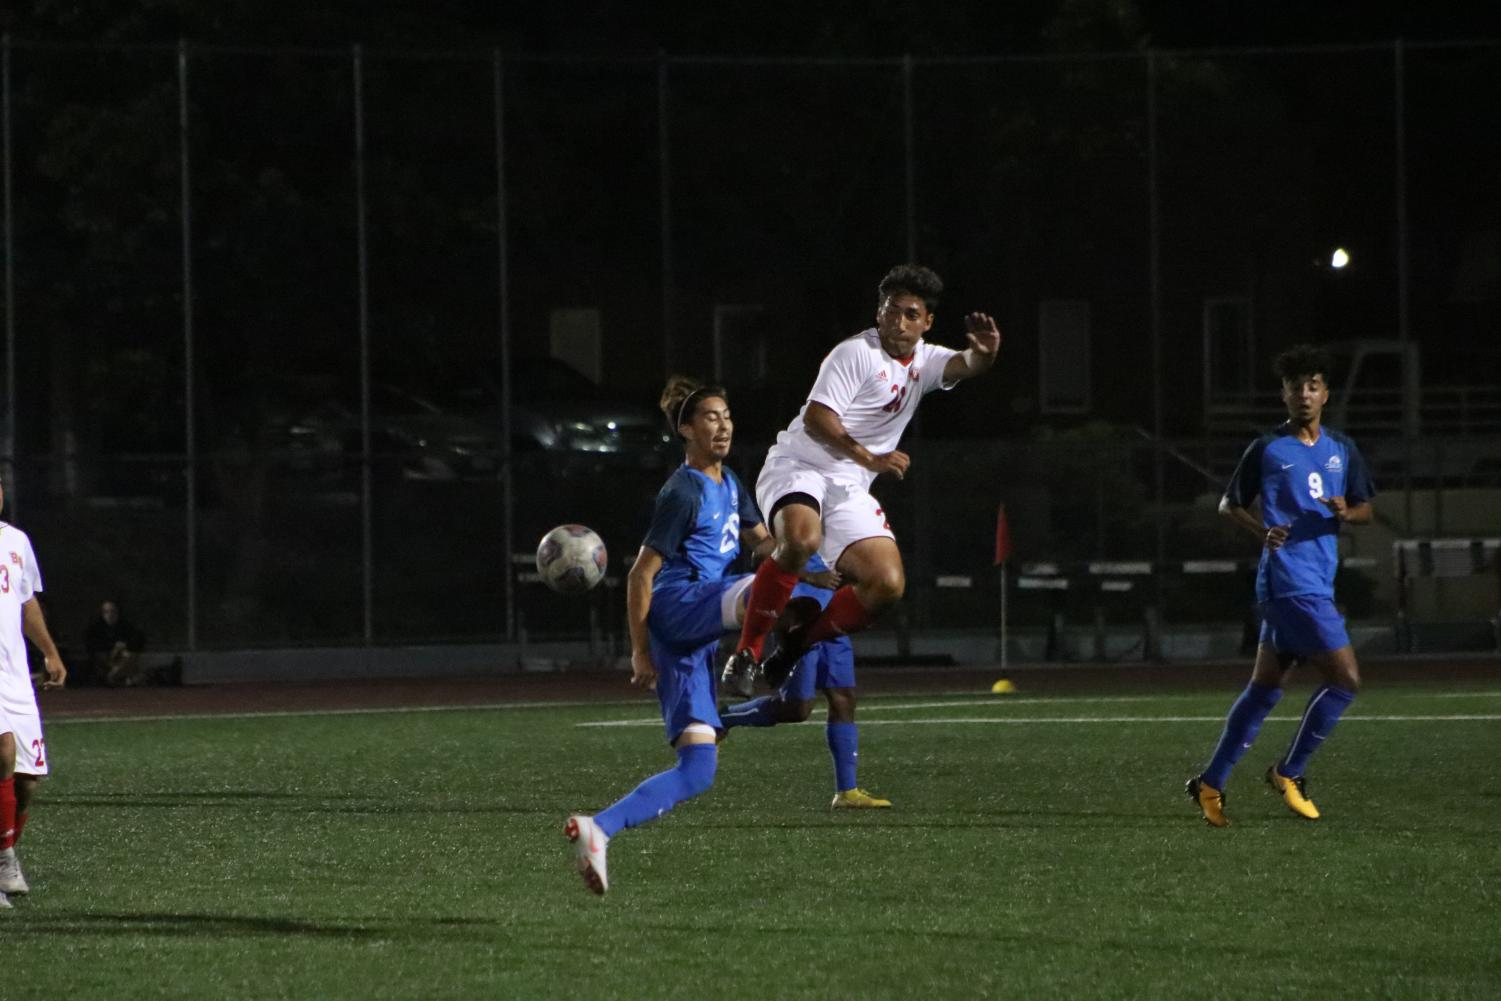 Freshman defender Henry Reeves makes a play over a CSUSB defender during the Eagles' 1-0 victory over the Coyotes on Sept. 8, 2018. Thecla Li/THE CHIMES